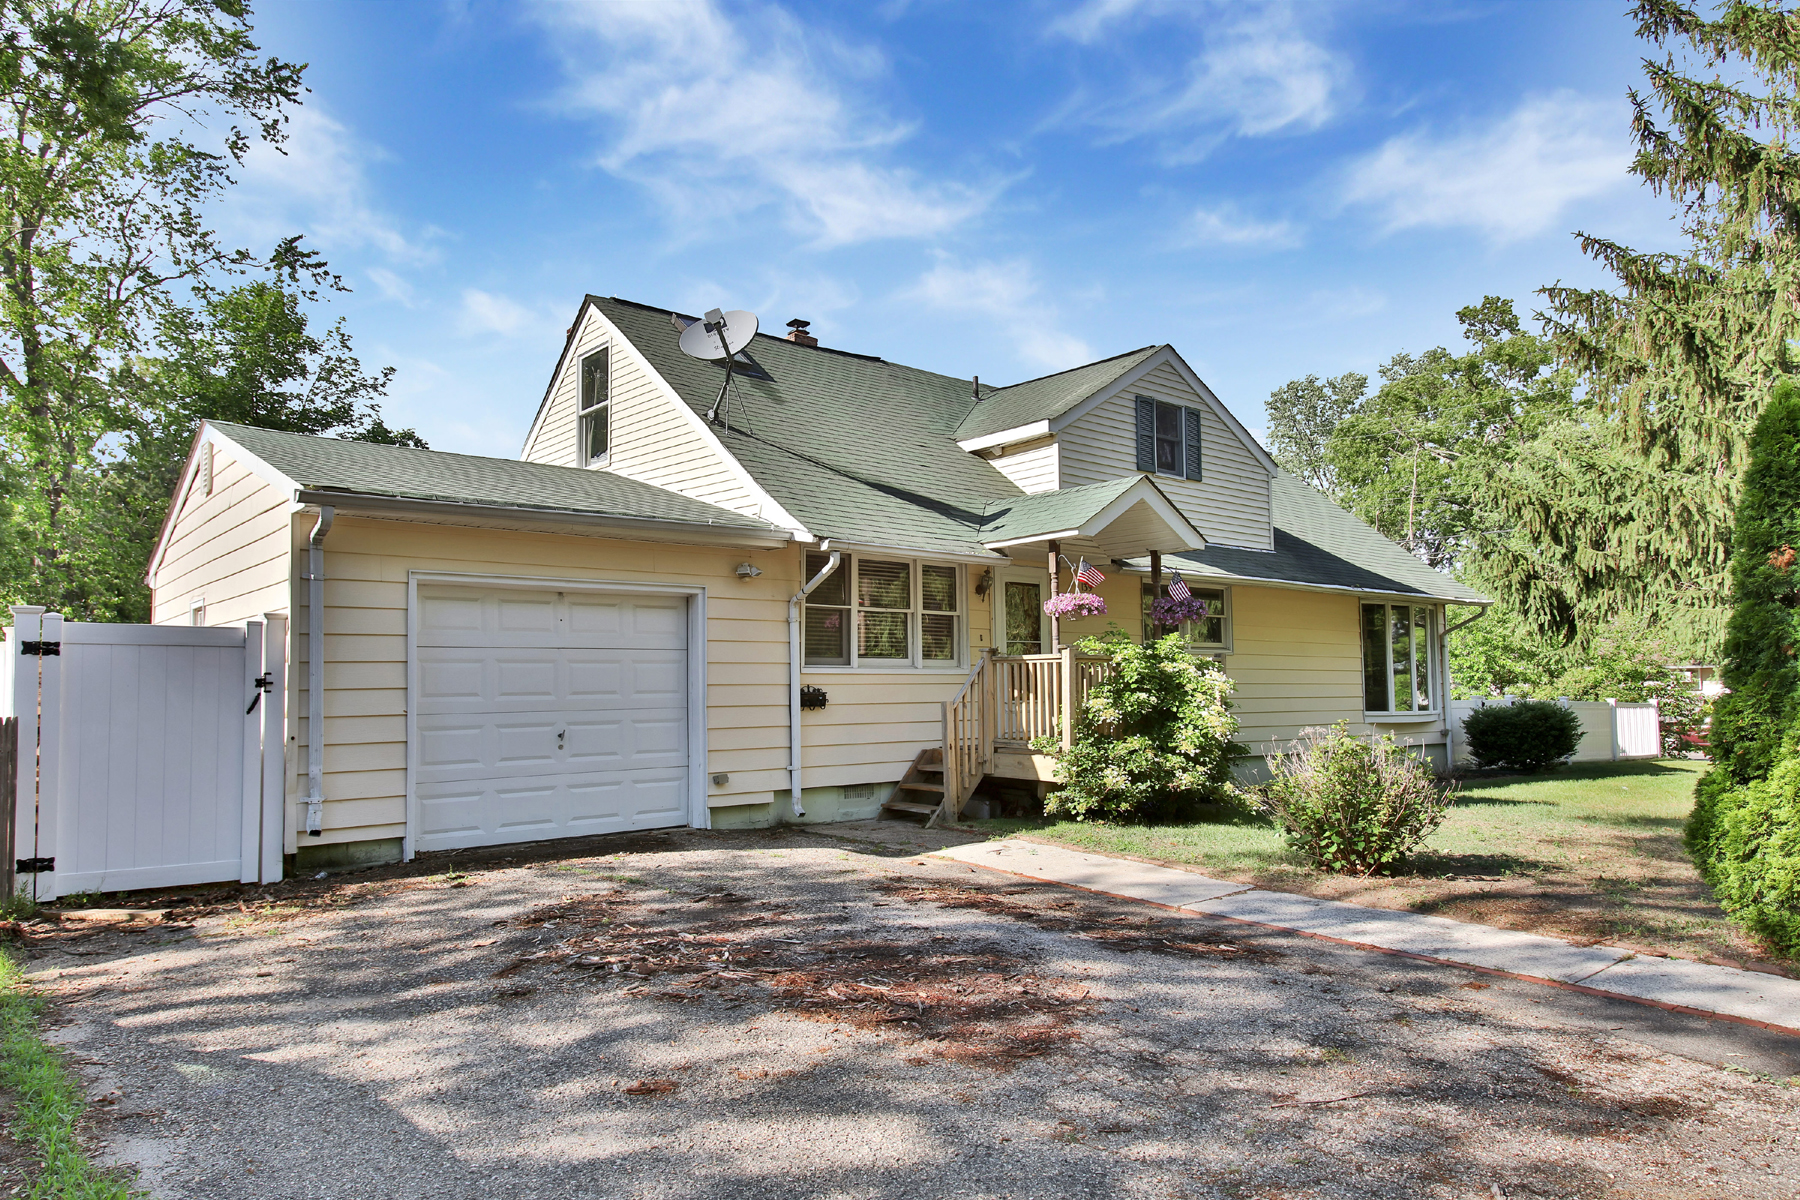 Single Family Home for Sale at Expanded Cape On Spacious Lot 139 Taft Drive Brick, New Jersey, 08724 United States